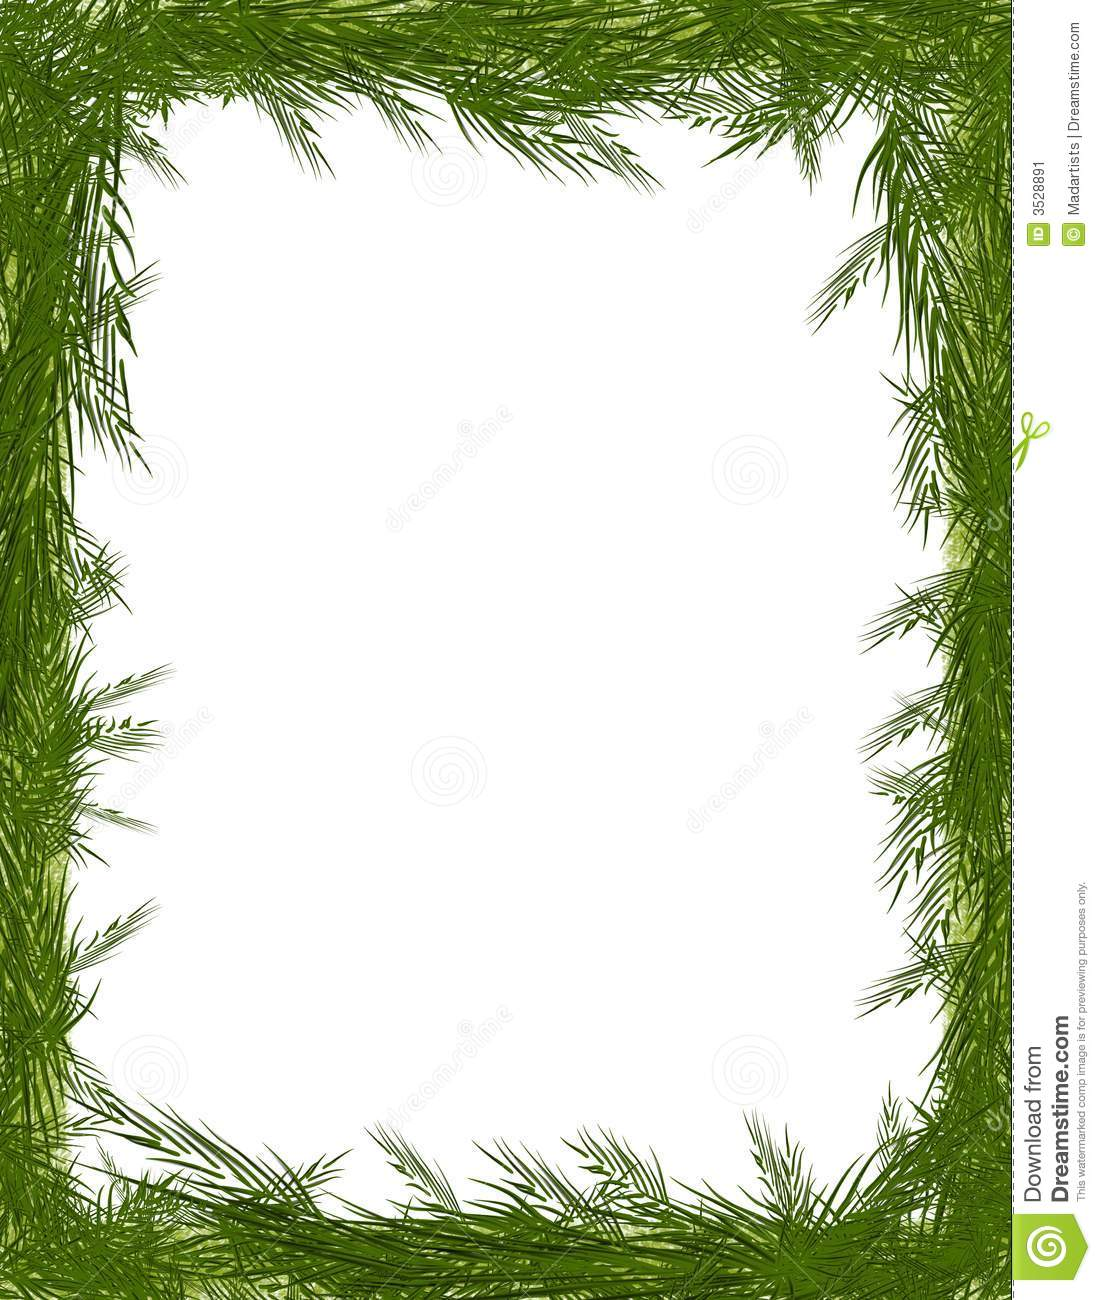 pine needle tree branch frame stock image image 3528891